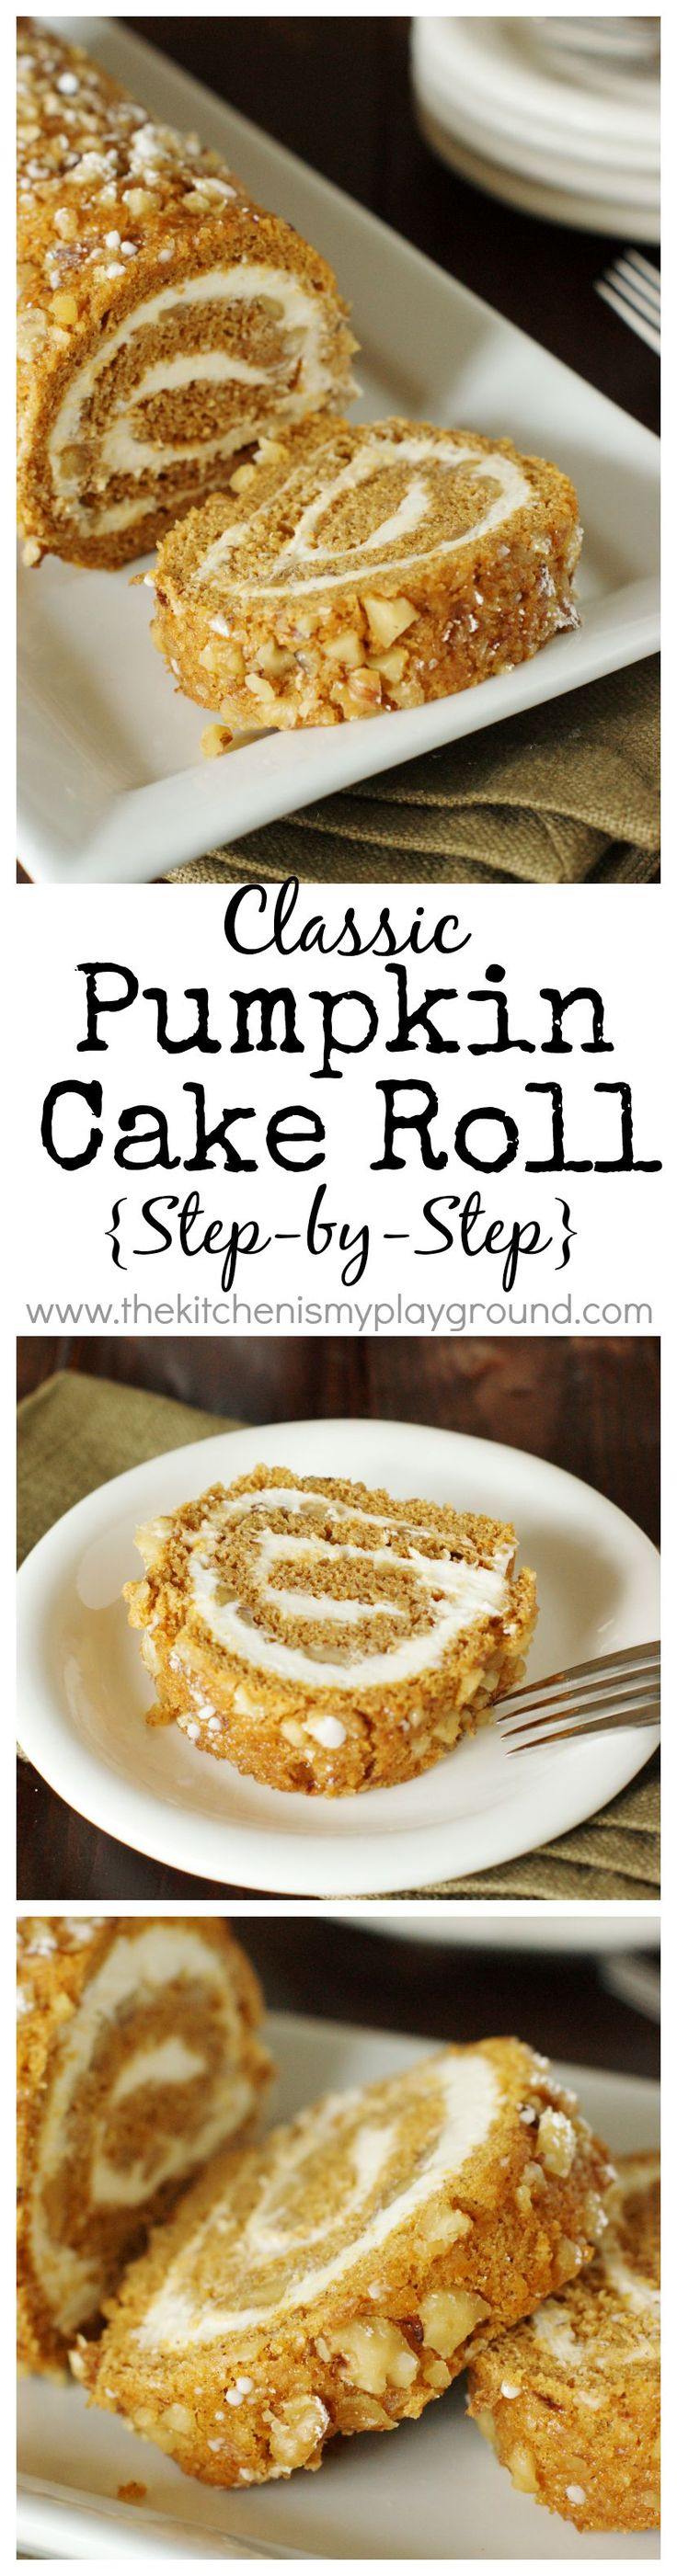 Classic Pumpkin Cake Roll ~ with step-by-step photos! www.thekitchenismyplayground.com